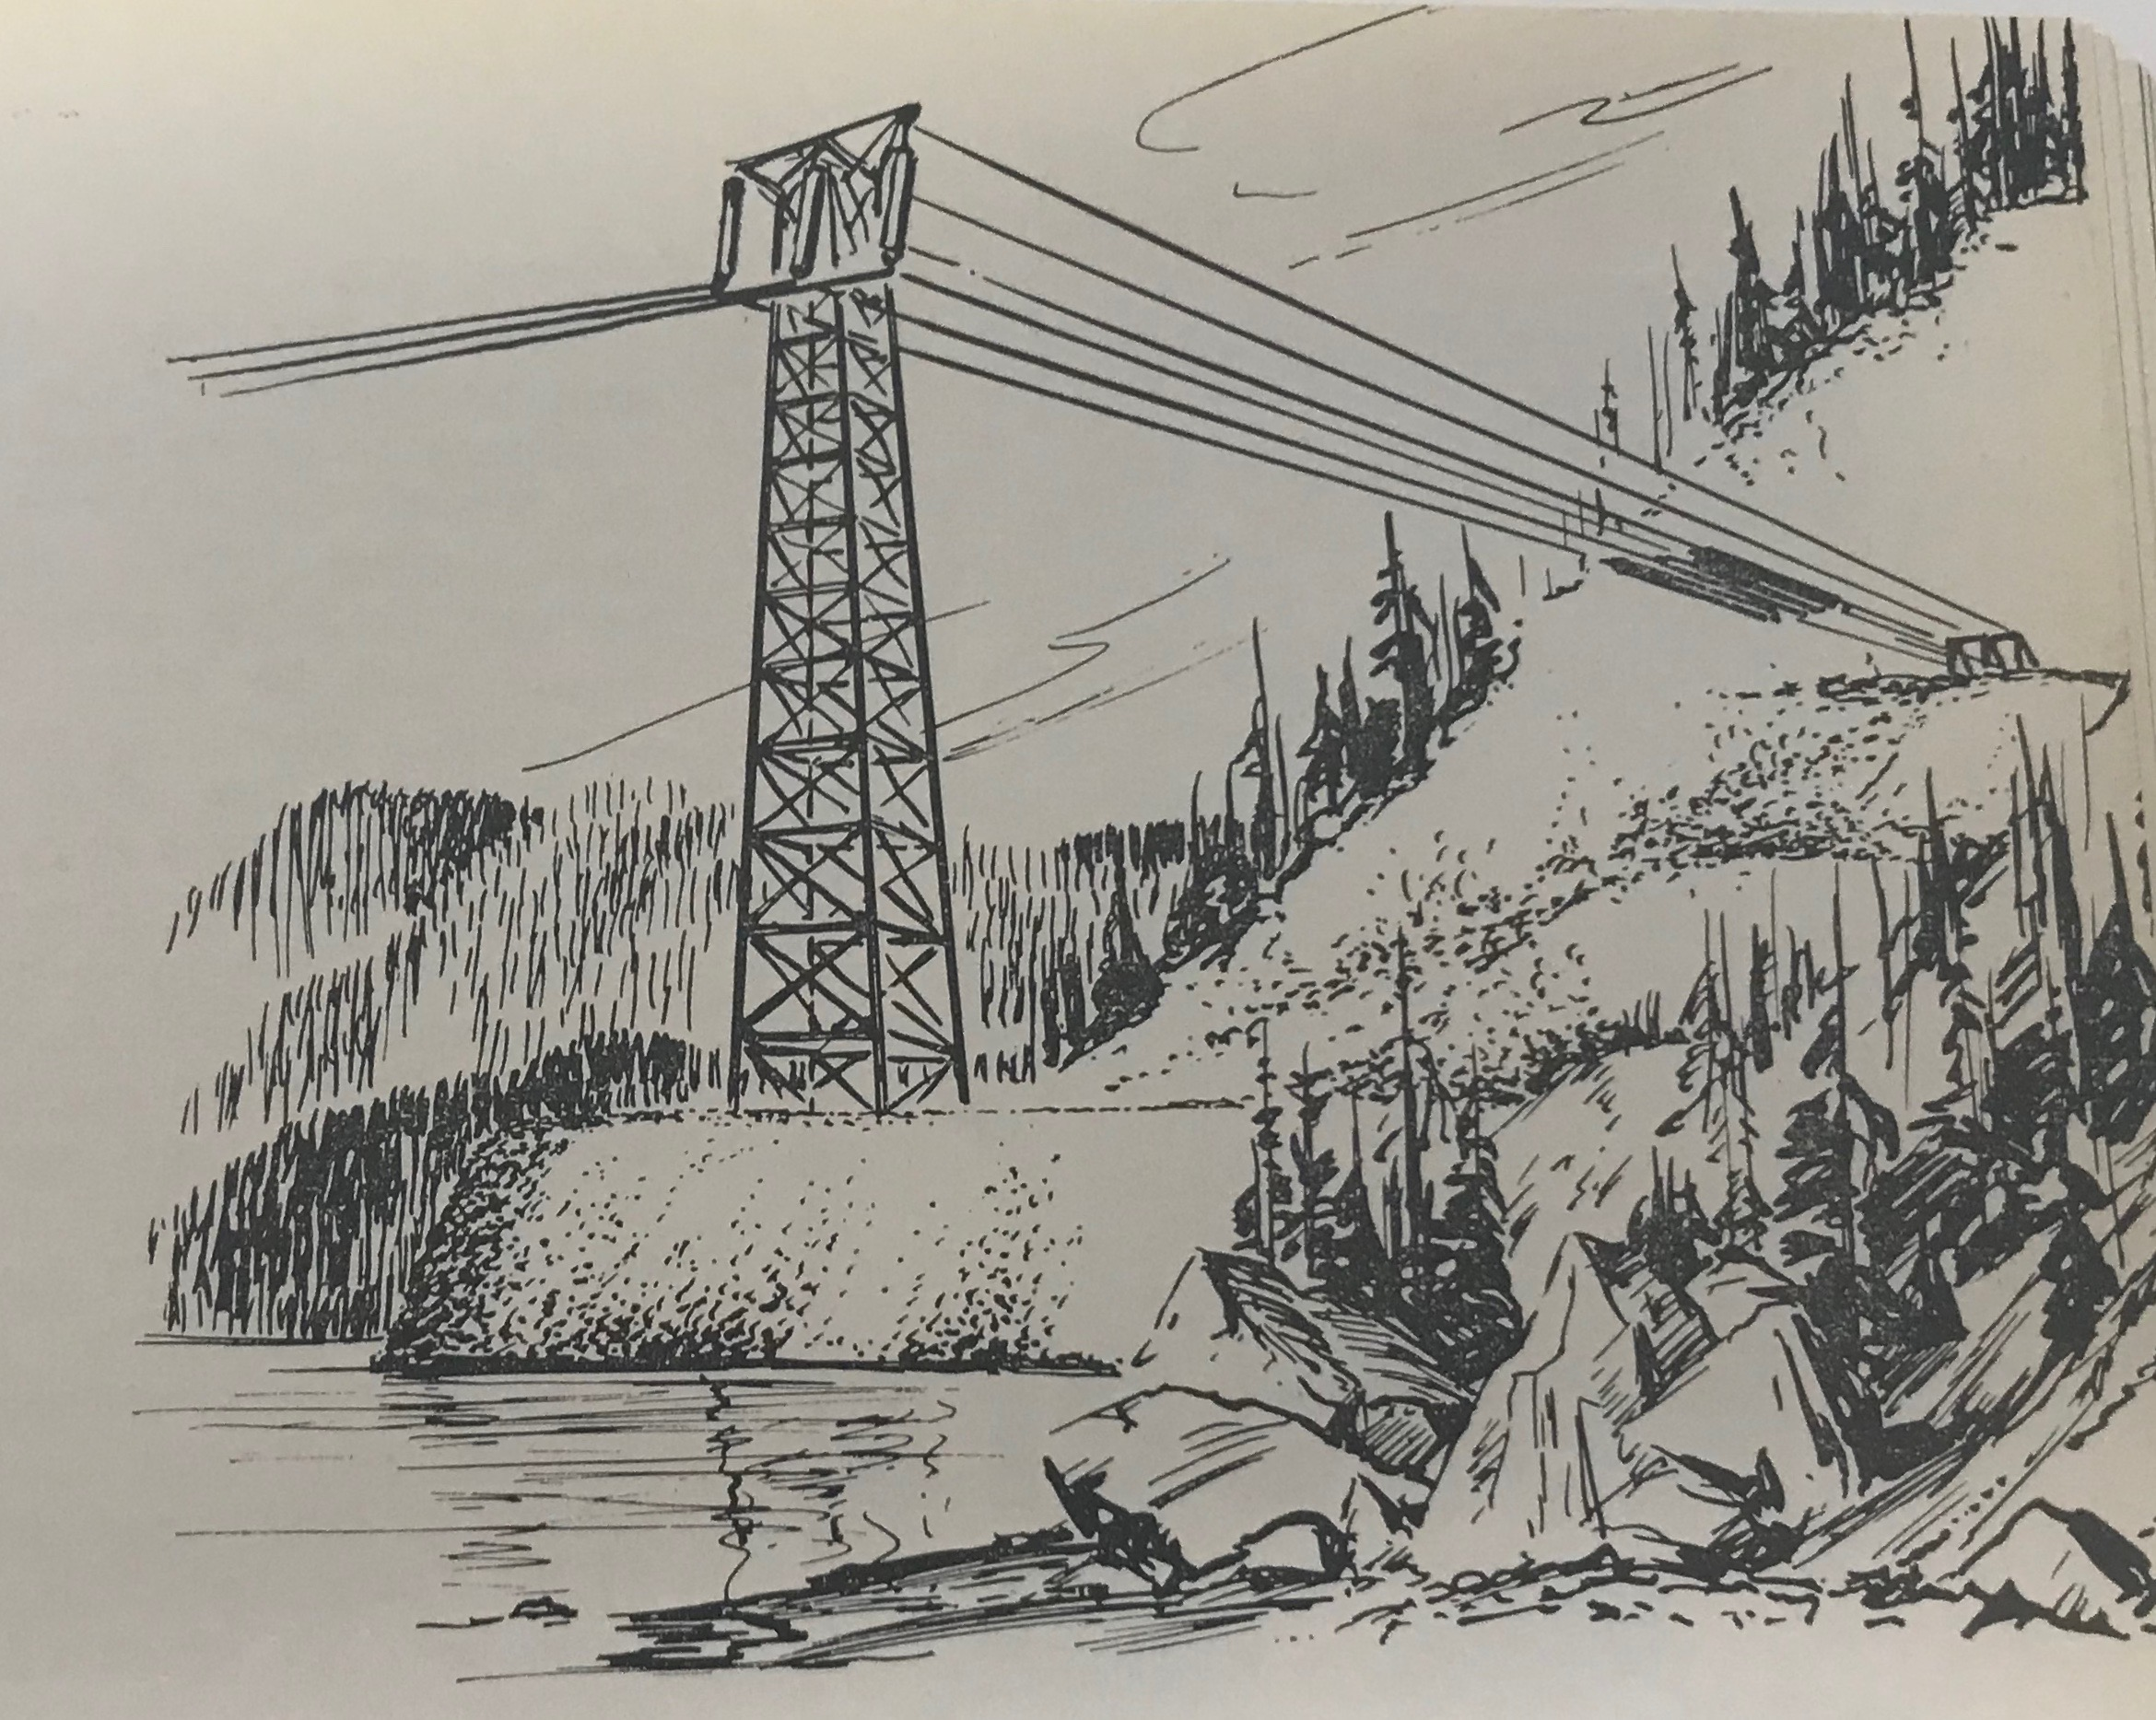 1951:New Engineering Feats - After the war, CM&S wants to connect their new Sullivan Mine operations in Kimberley to the electricity produced at the Brilliant Dam. An 86-kilometer power line needed to be built. A line of that size should not have been an issue, however, it needed to cross Kootenay Lake. As such, West Kootenay Power's lines once again make history, completing the longest power-line span in world, measuring 2 miles, which connected the route across the Kootenay Lake.This drawing appeared in the March 1952 edition of Cominco Magazine showing the proposed design for the span, in particular the plan for the final power pole before the lake.